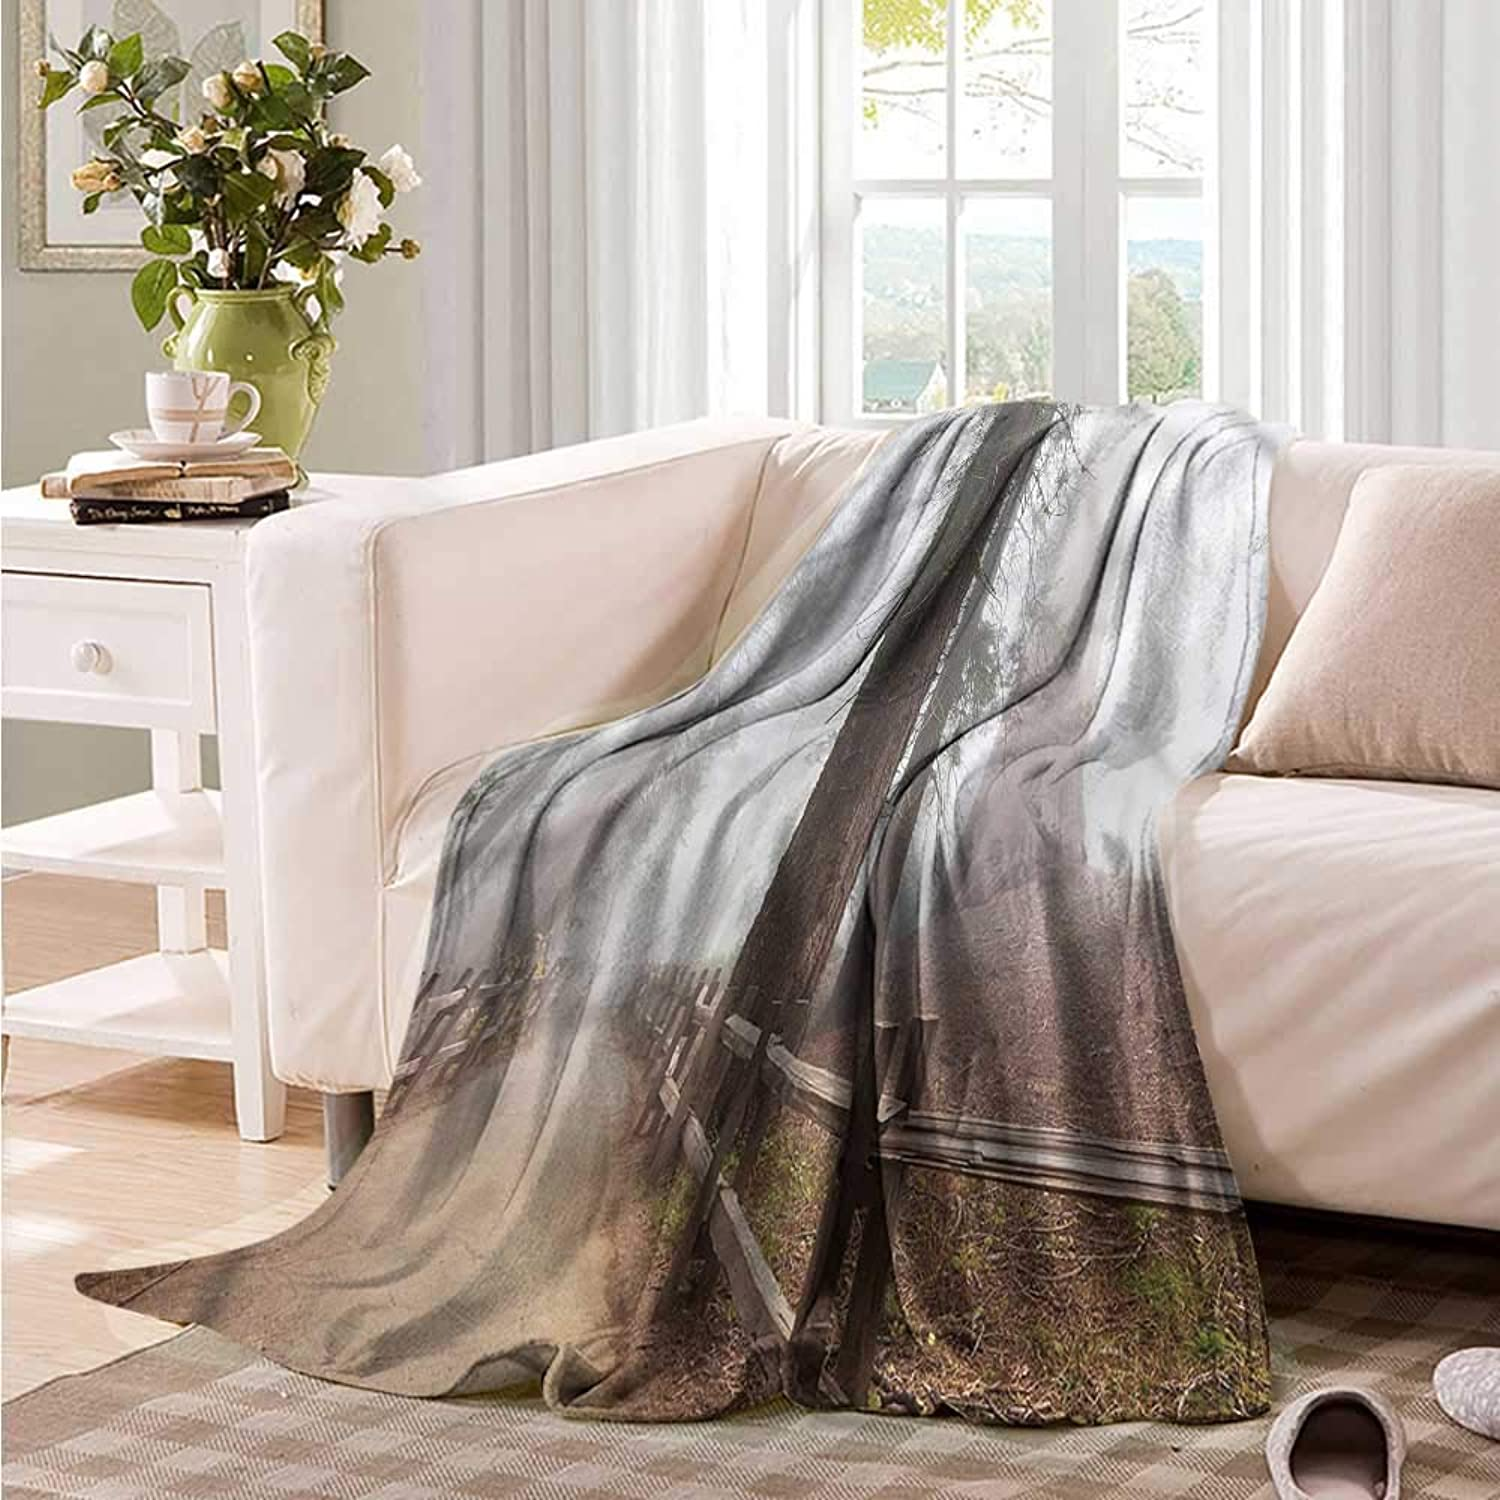 Beds Blanket Yosemite Forest in Foggy Morning Camping Throw,Office wrap 60  W x 51  L